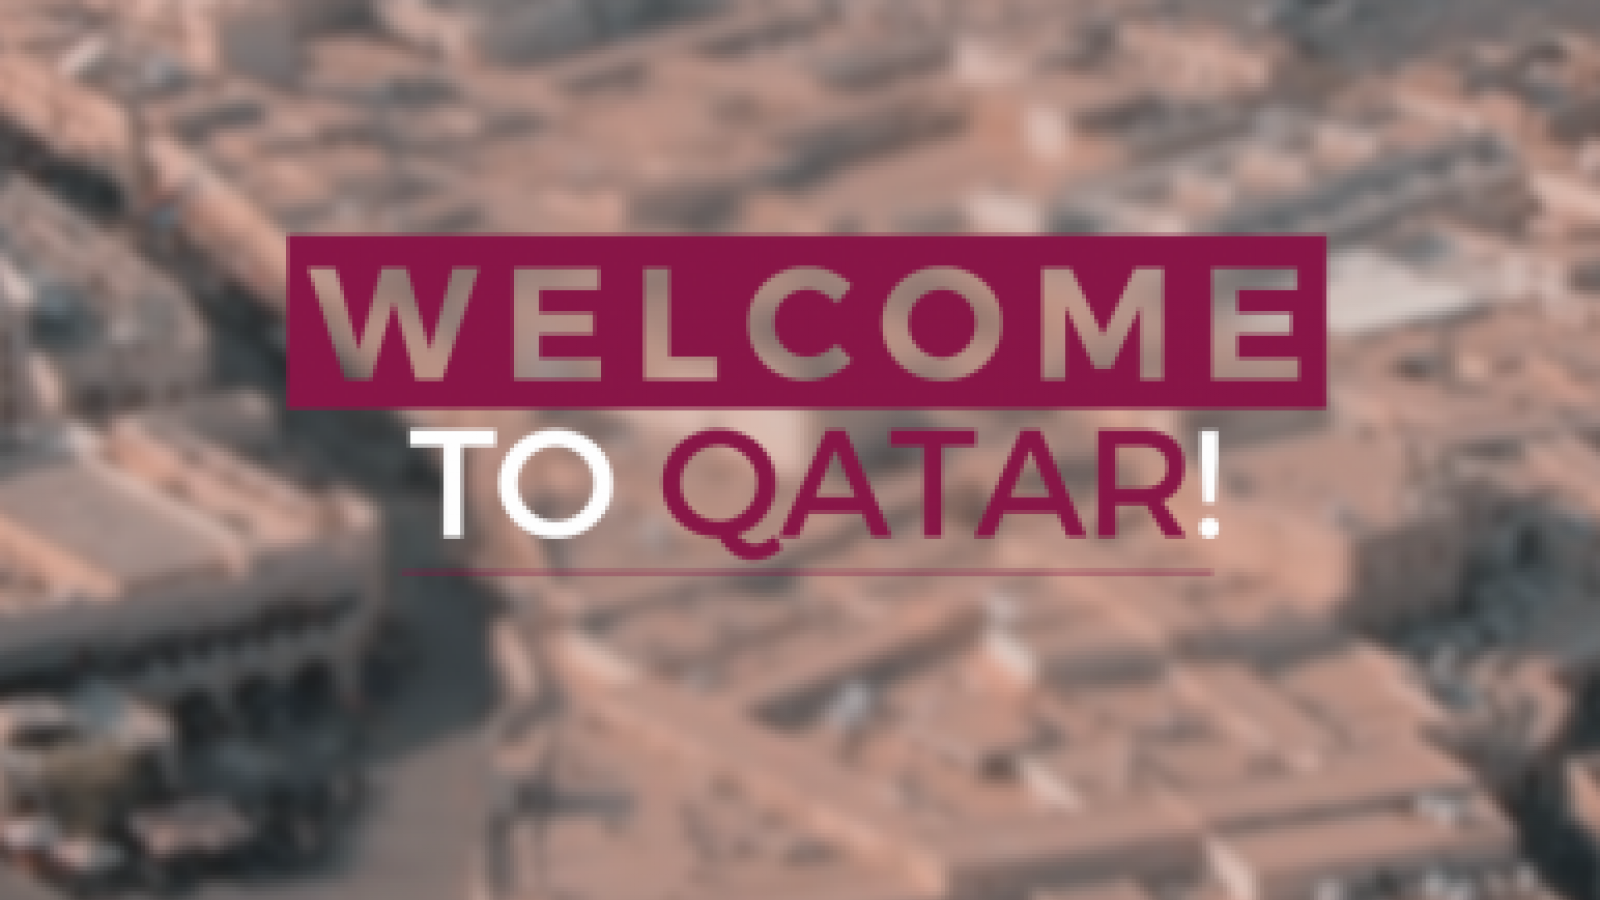 WATCH: Welcome to Qatar - Souq Waqif